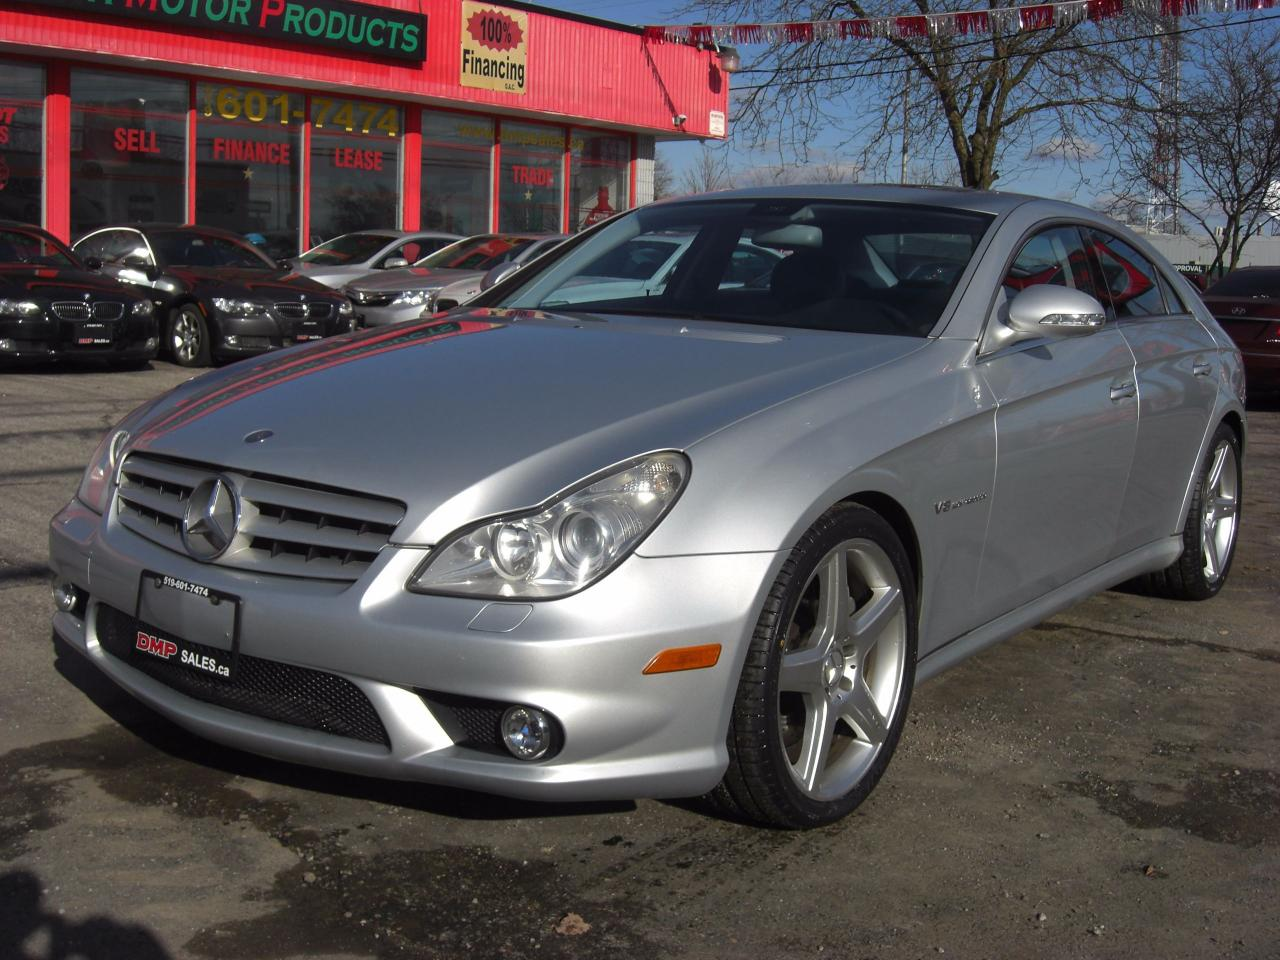 Used 2006 mercedes benz cls55 amg 5 5l amg for sale in for 2006 mercedes benz cls55 amg